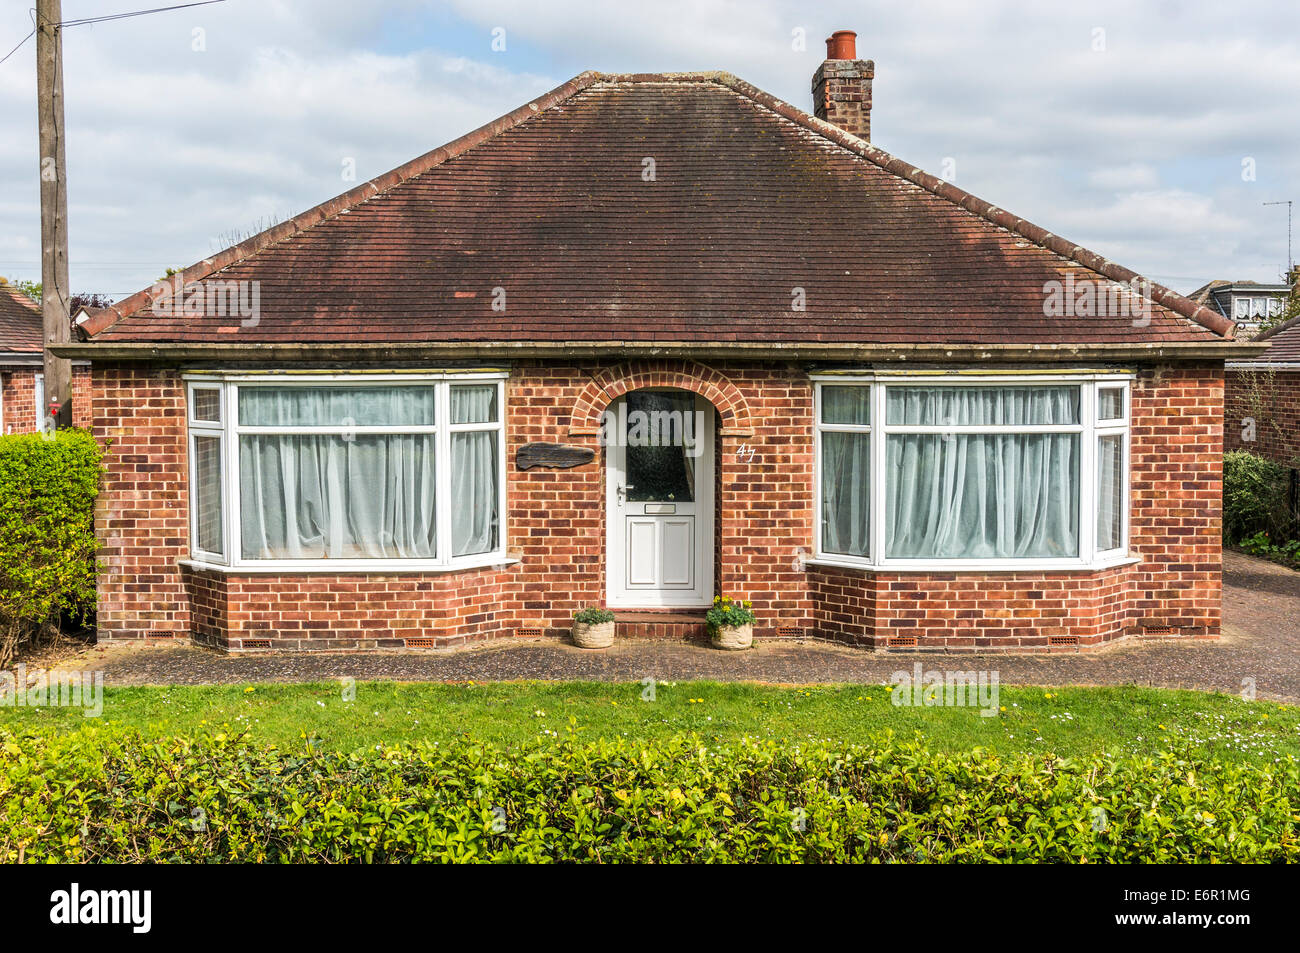 A 1950s detached period bungalow in Church Street, Northborough, Cambridgeshire, England, UK. - Stock Image